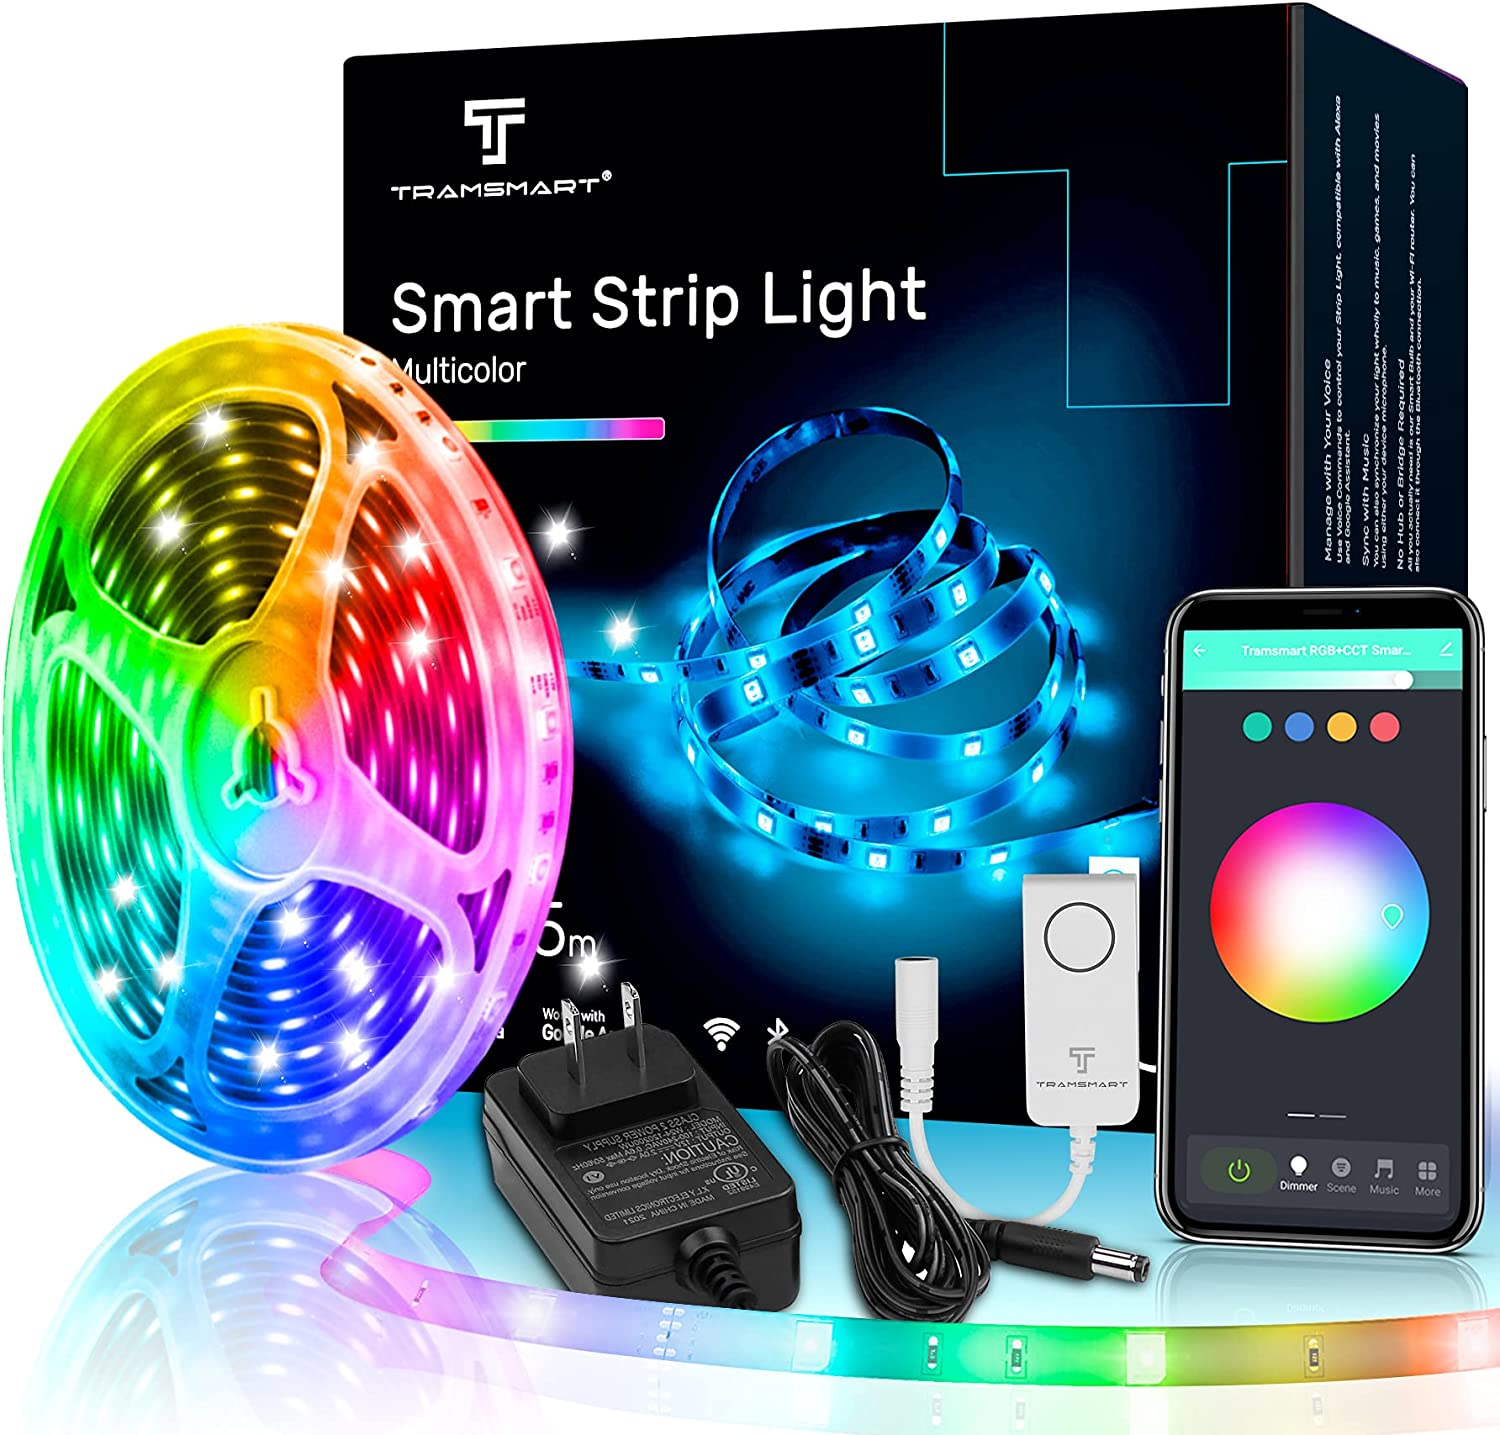 Smart LED Strip Lights,16.4ft Voice Control Works with Alexa and Google Home (No Hub Required),Music Sync,RGB Colors Changing with App Remote Control WiFi Light Strip,Decoration Bedroom,Kitchen,Bar